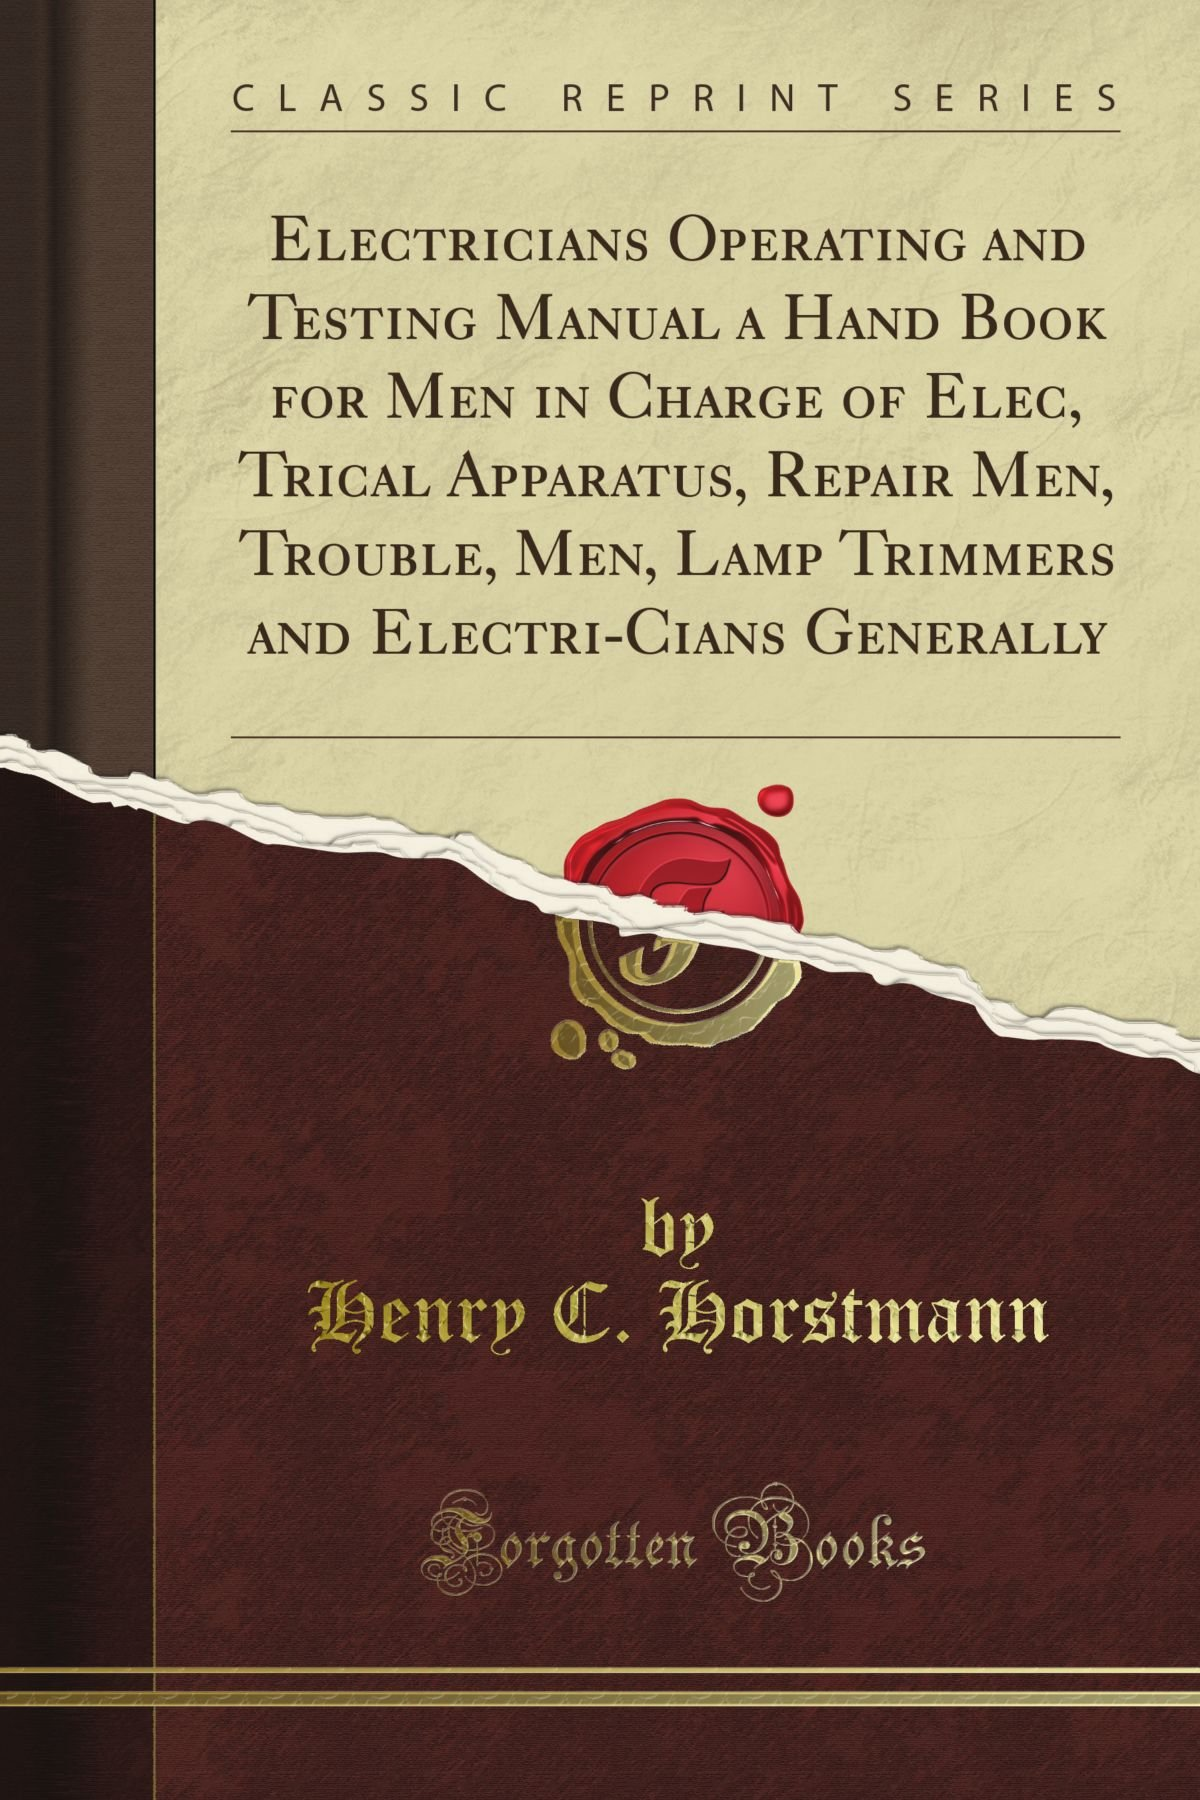 Electricians Operating and Testing Manual a Hand Book for Men in Charge of  Elec, Trical Apparatus, Repair Men, Trouble, Men, Lamp Trimmers and  Electri-Cians ...